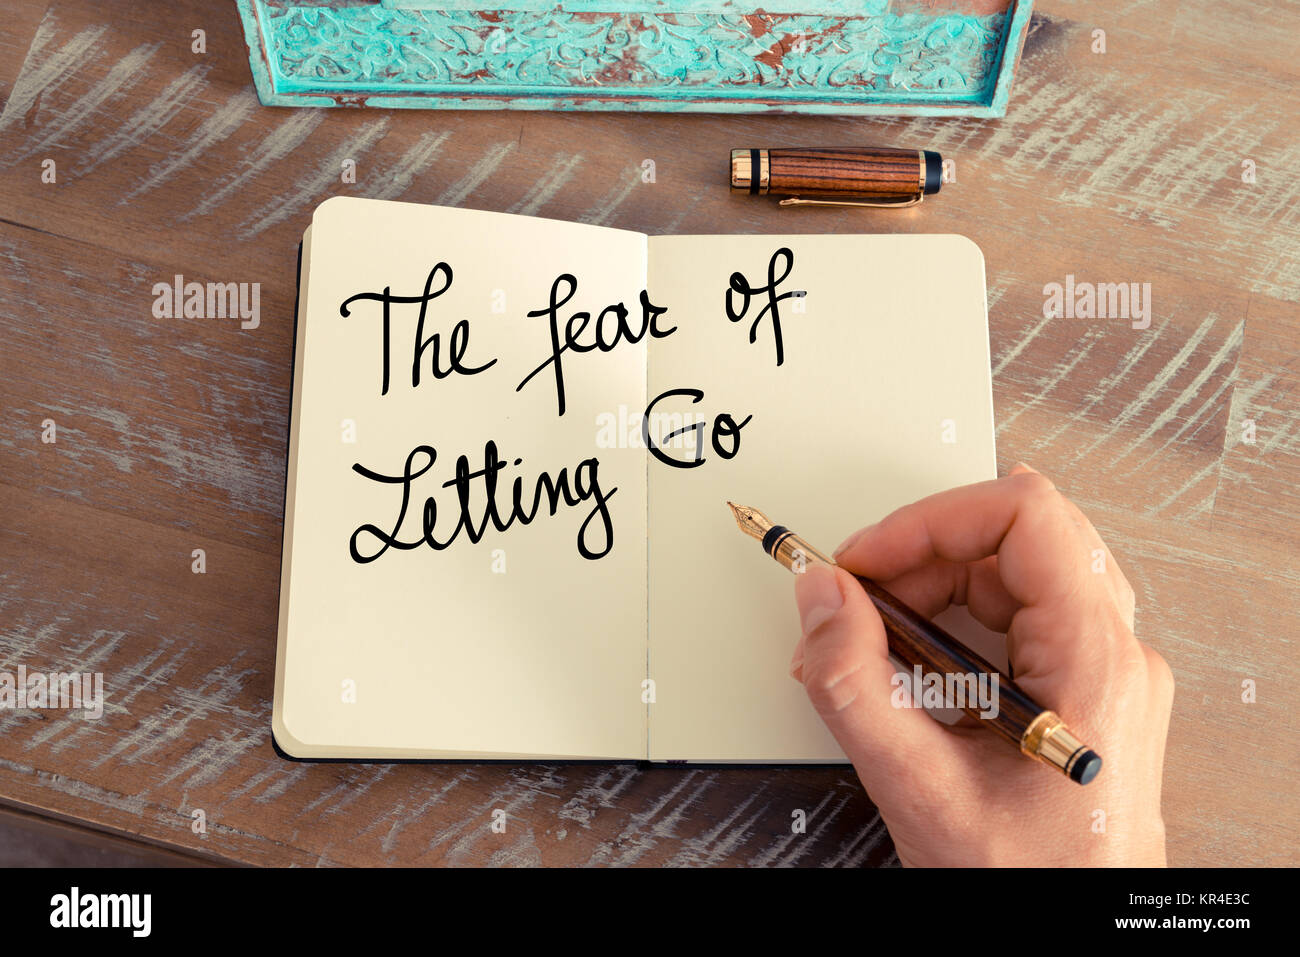 Handwritten text The Fear Of Letting Go - Stock Image